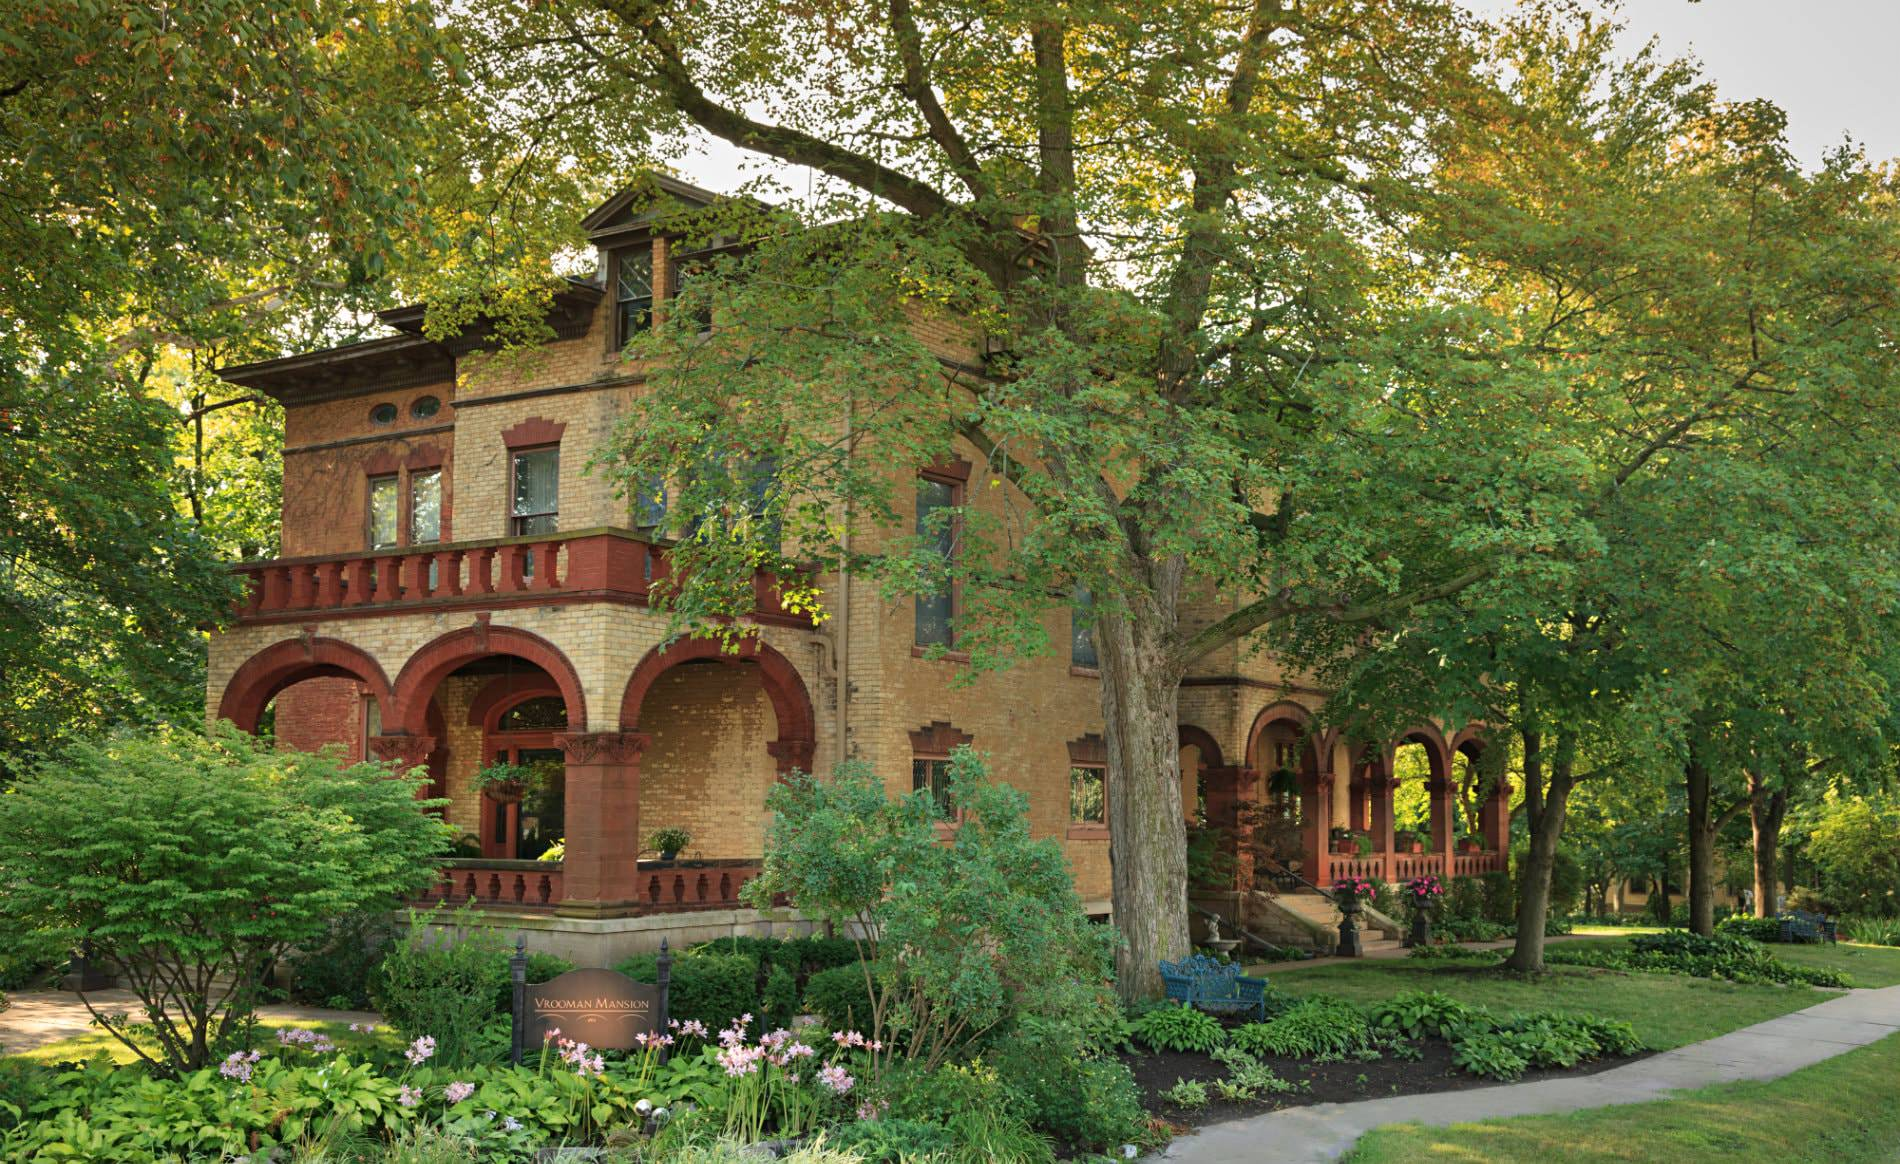 Brick mansion with red trim surrounded by lush green landscaping